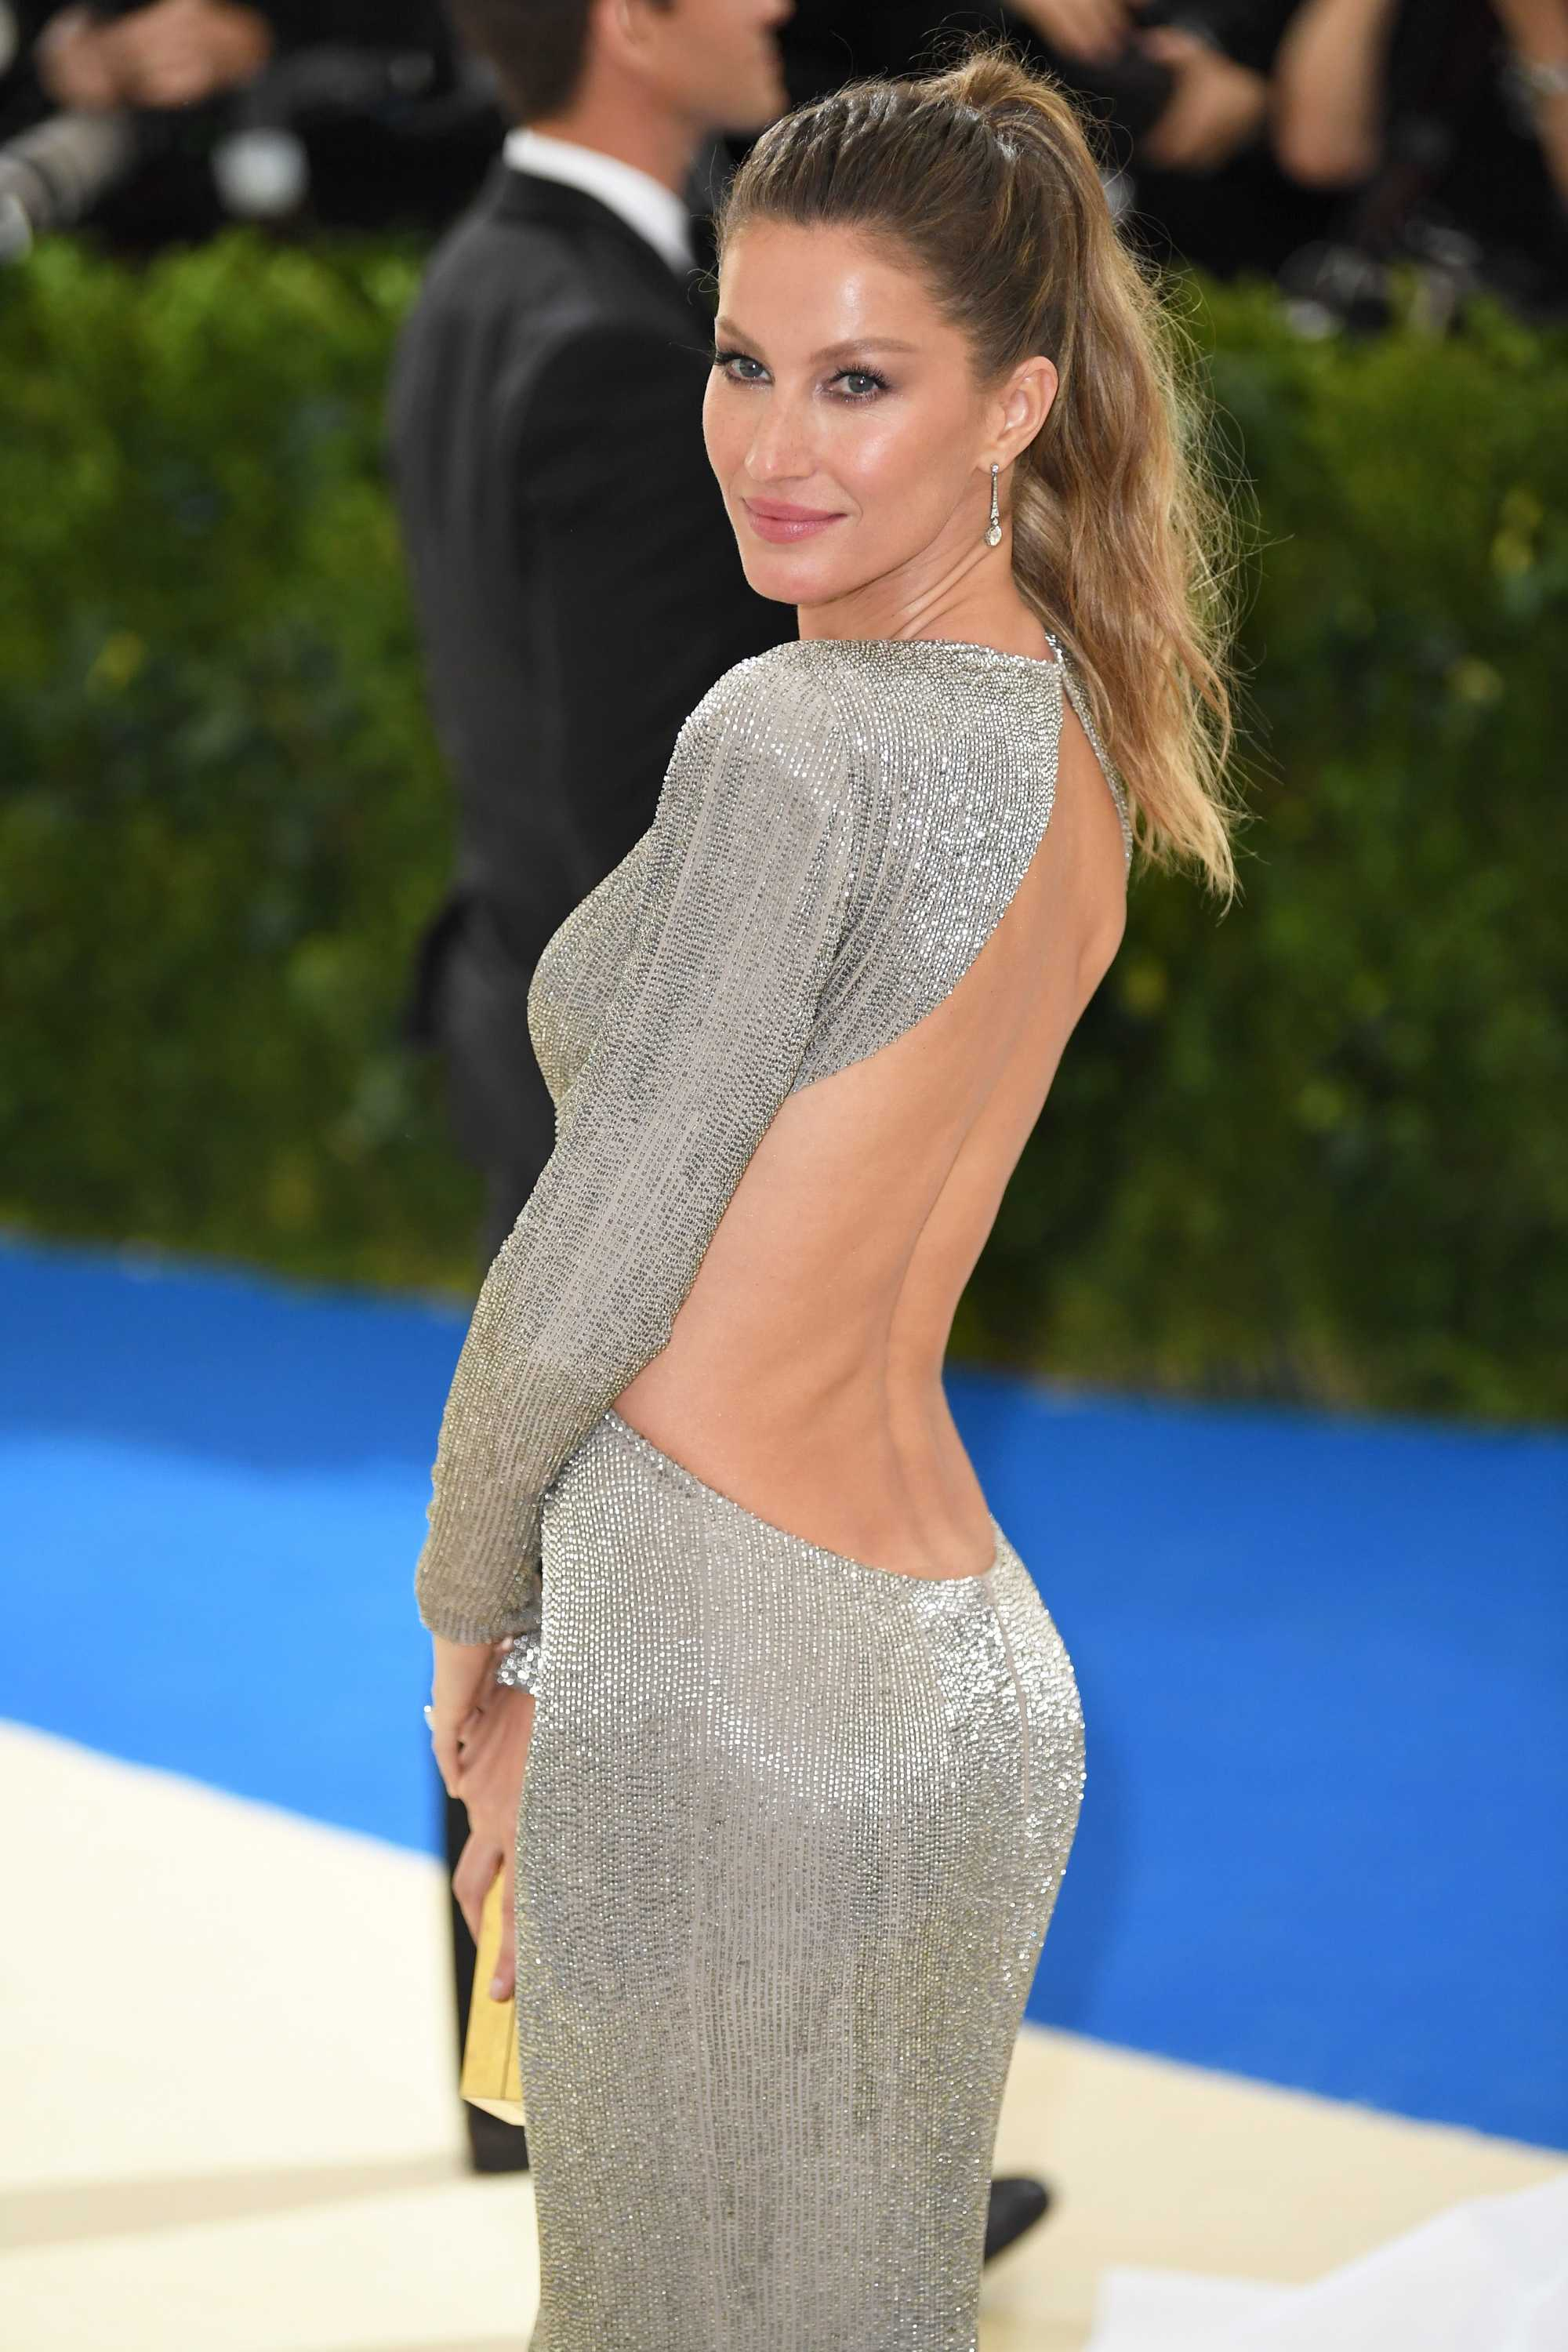 Dirty blonde hair - Gisele wearing her golden tresses in a high ponytail